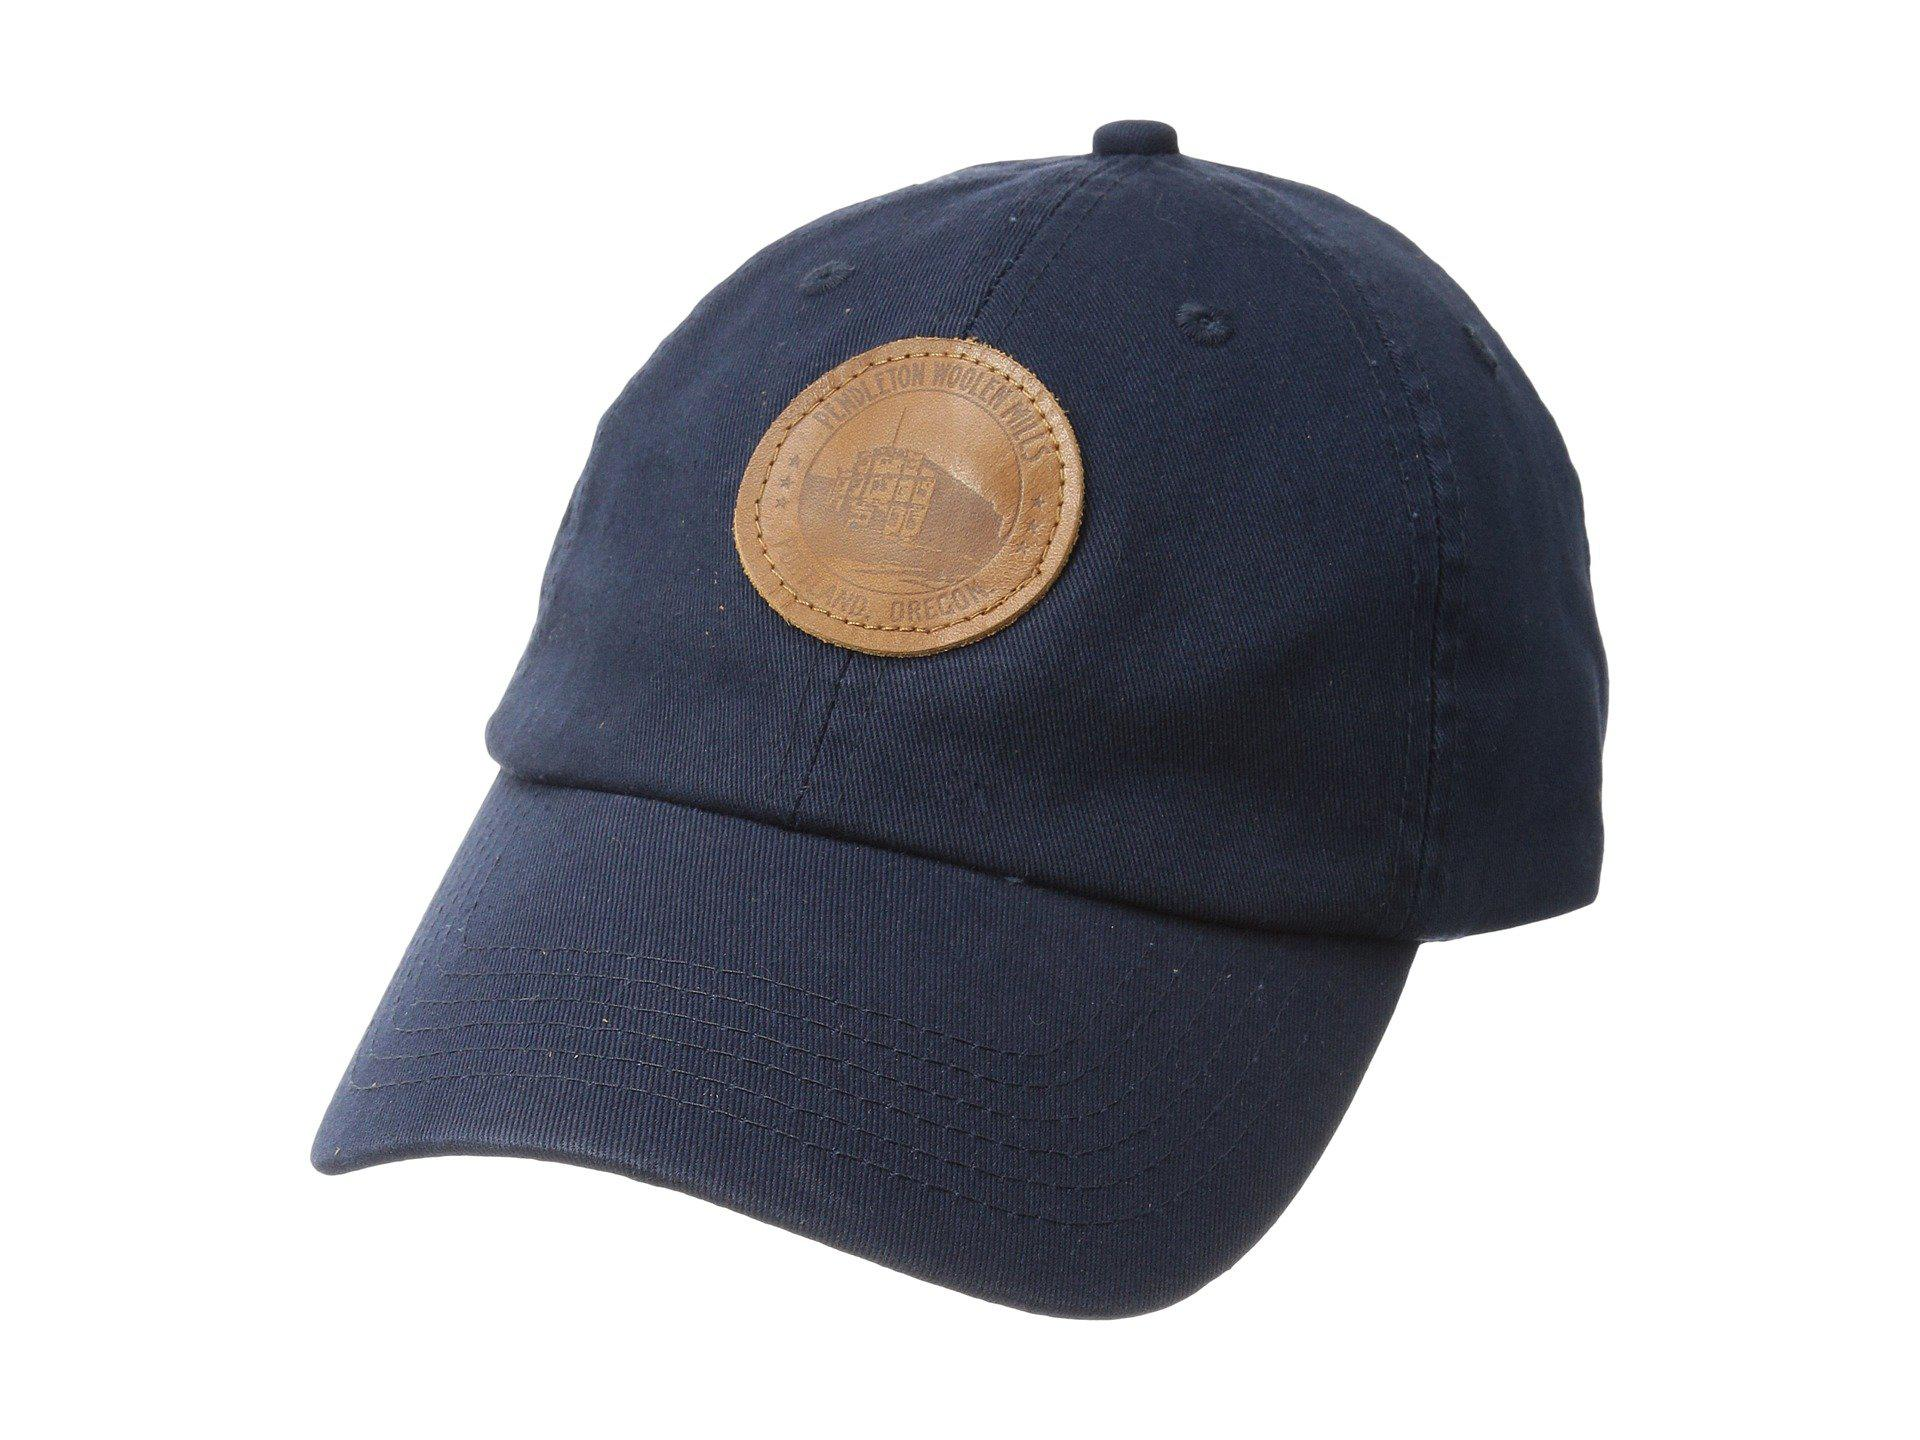 Lyst - Pendleton Cotton Hat With Mill Patch (navy) Caps in Blue for Men f16819d17364